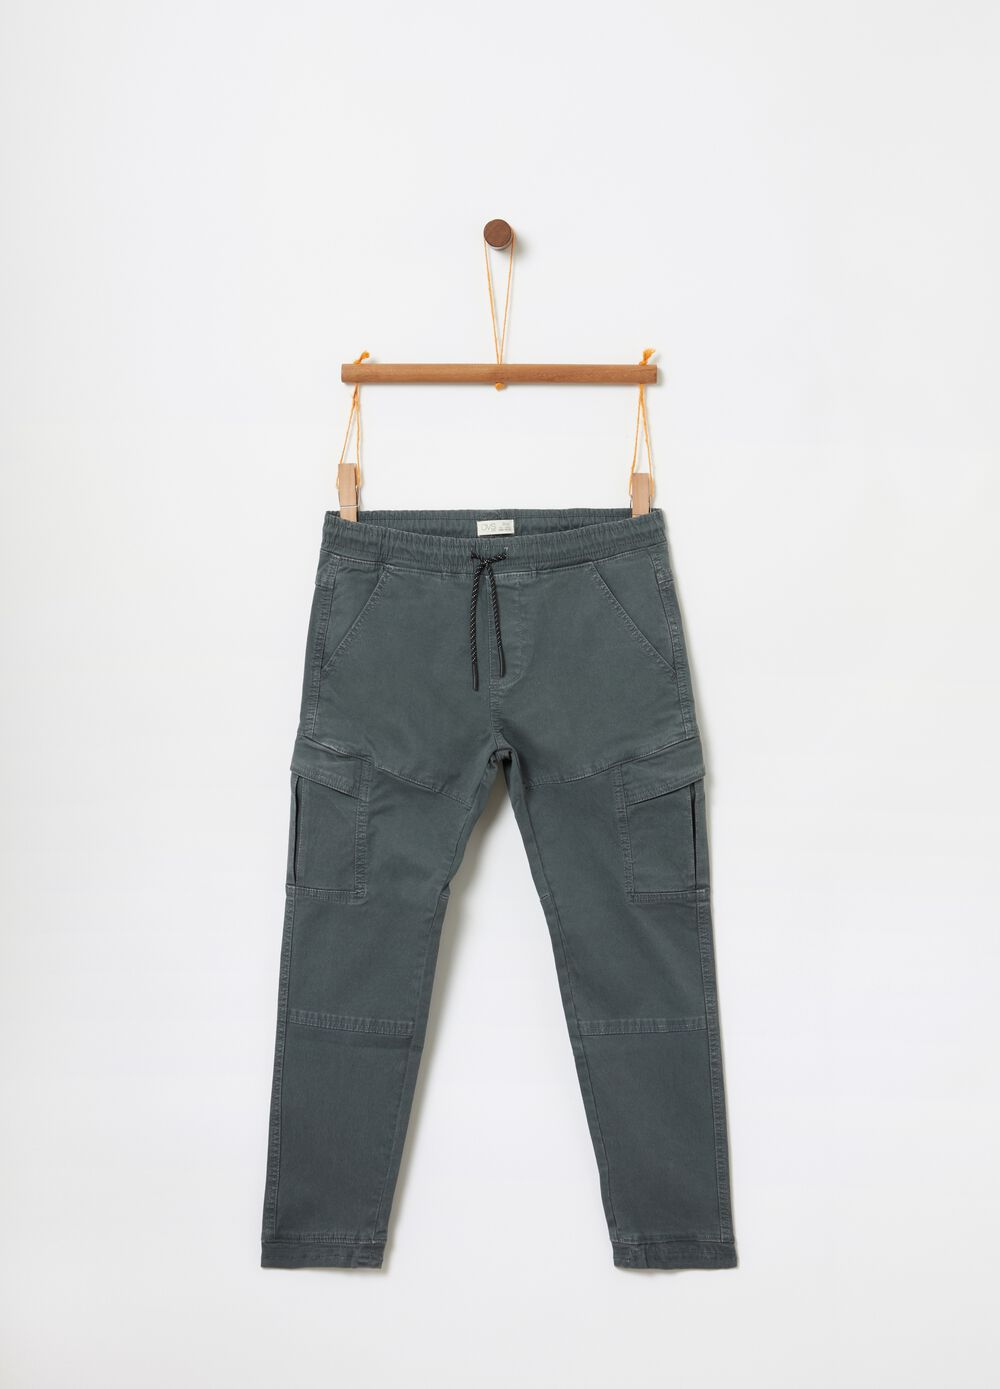 Jogger trousers with drawstring and cargo pockets